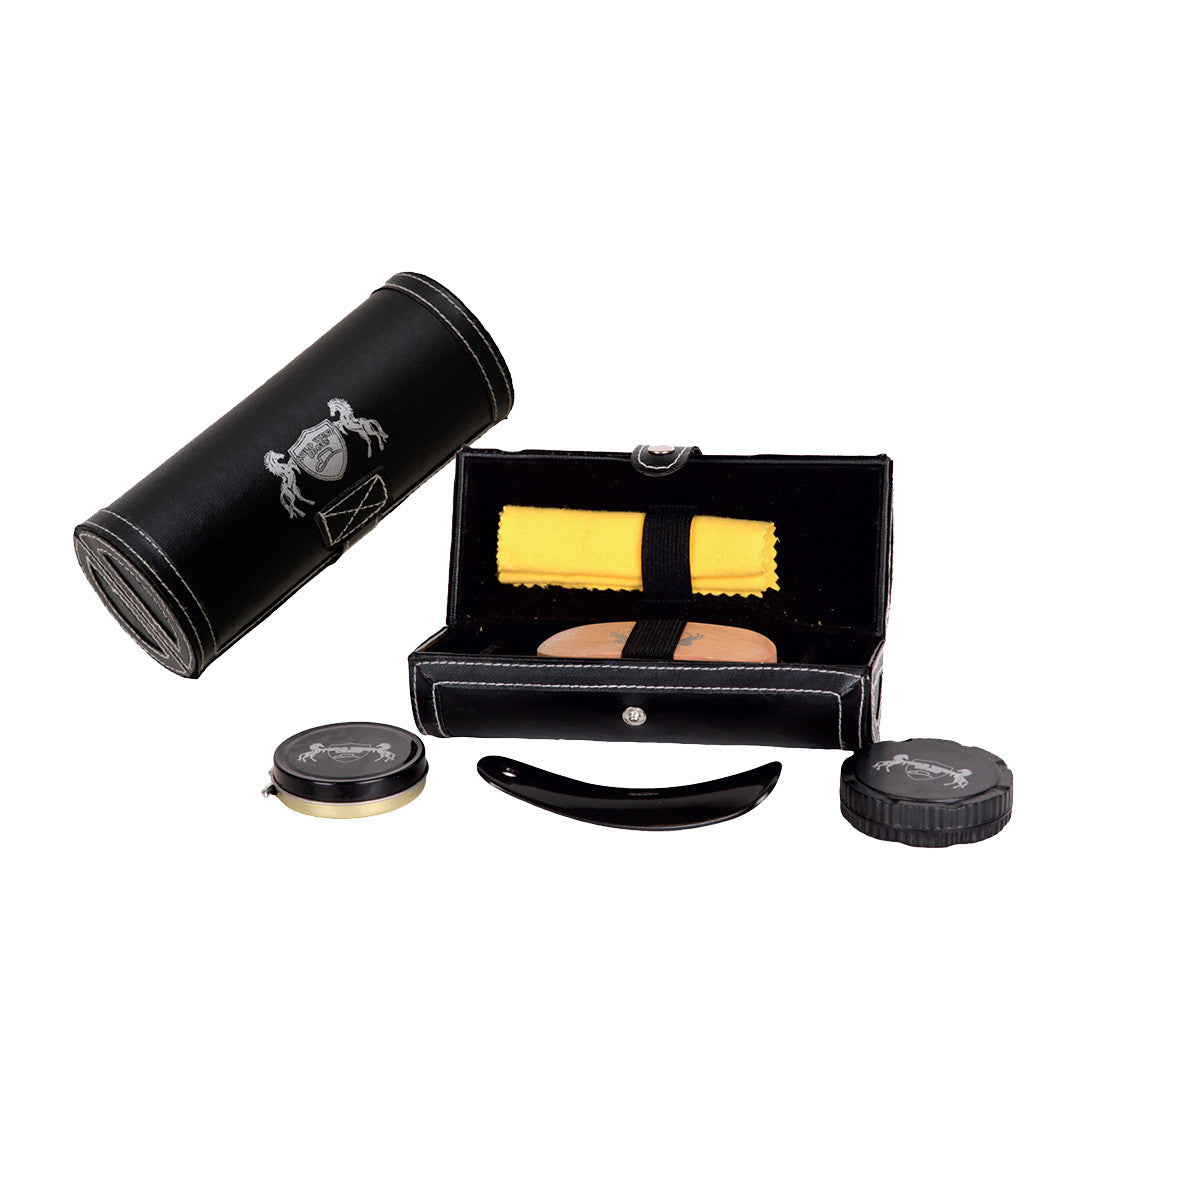 Leather Boot Polish Travel Kit - VaqueroBoots.com